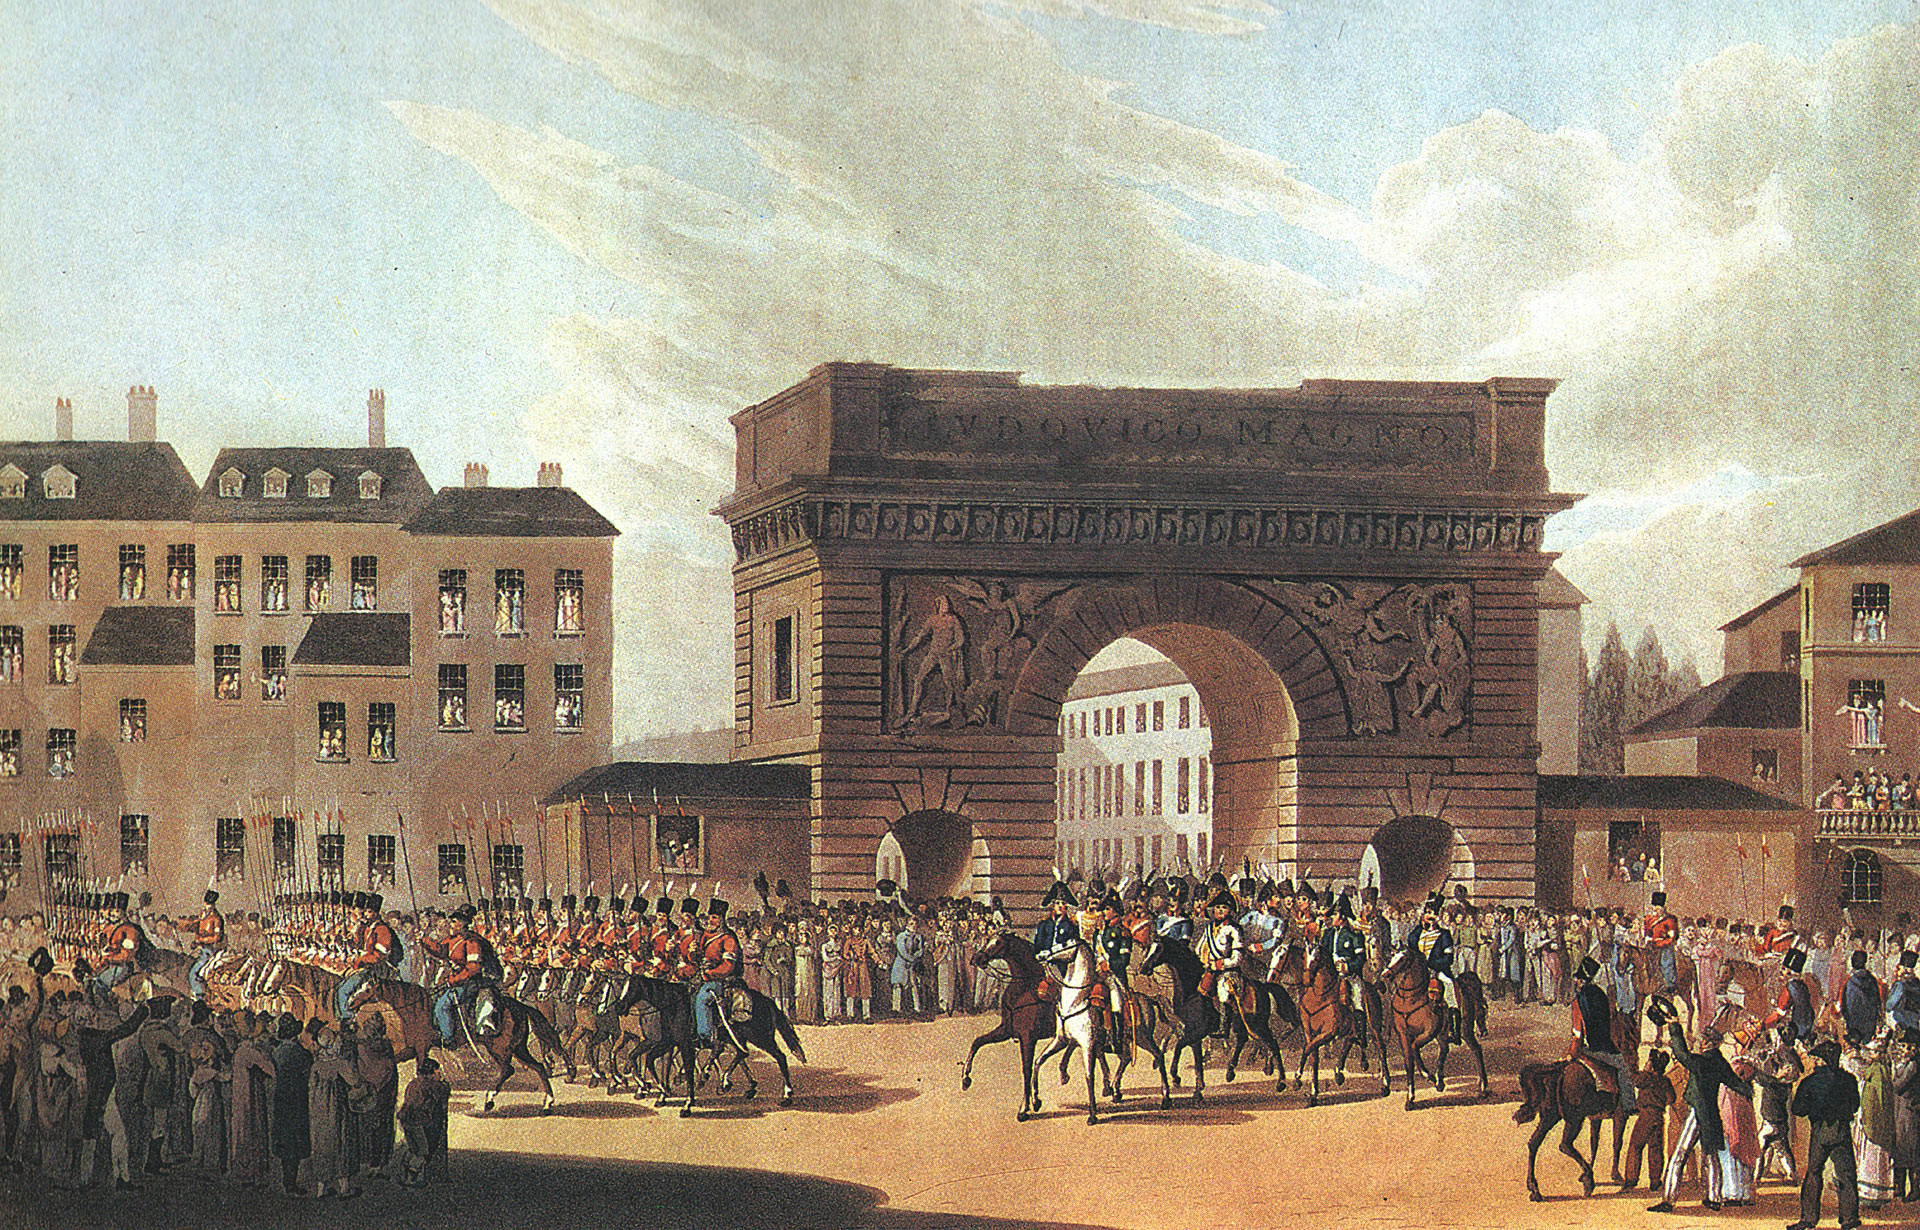 Unknown author. Russian army enters Paris in 1814.